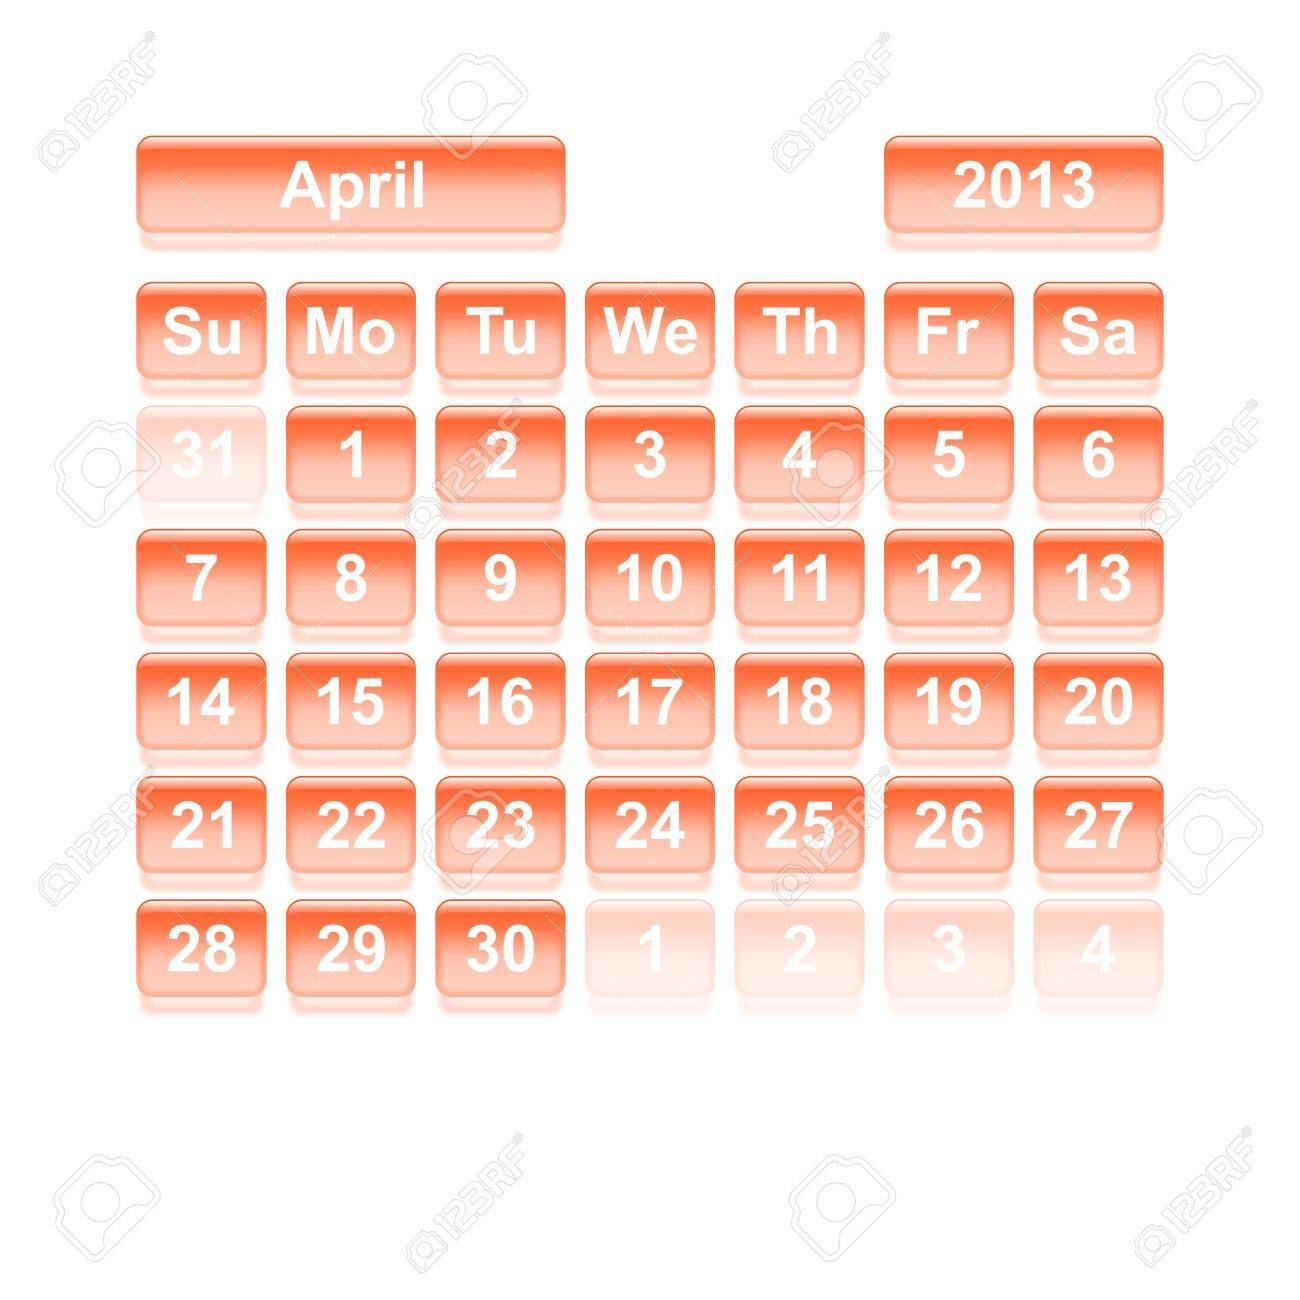 Monthly calendar for New Year 2013  April Stock Vector - 16818361